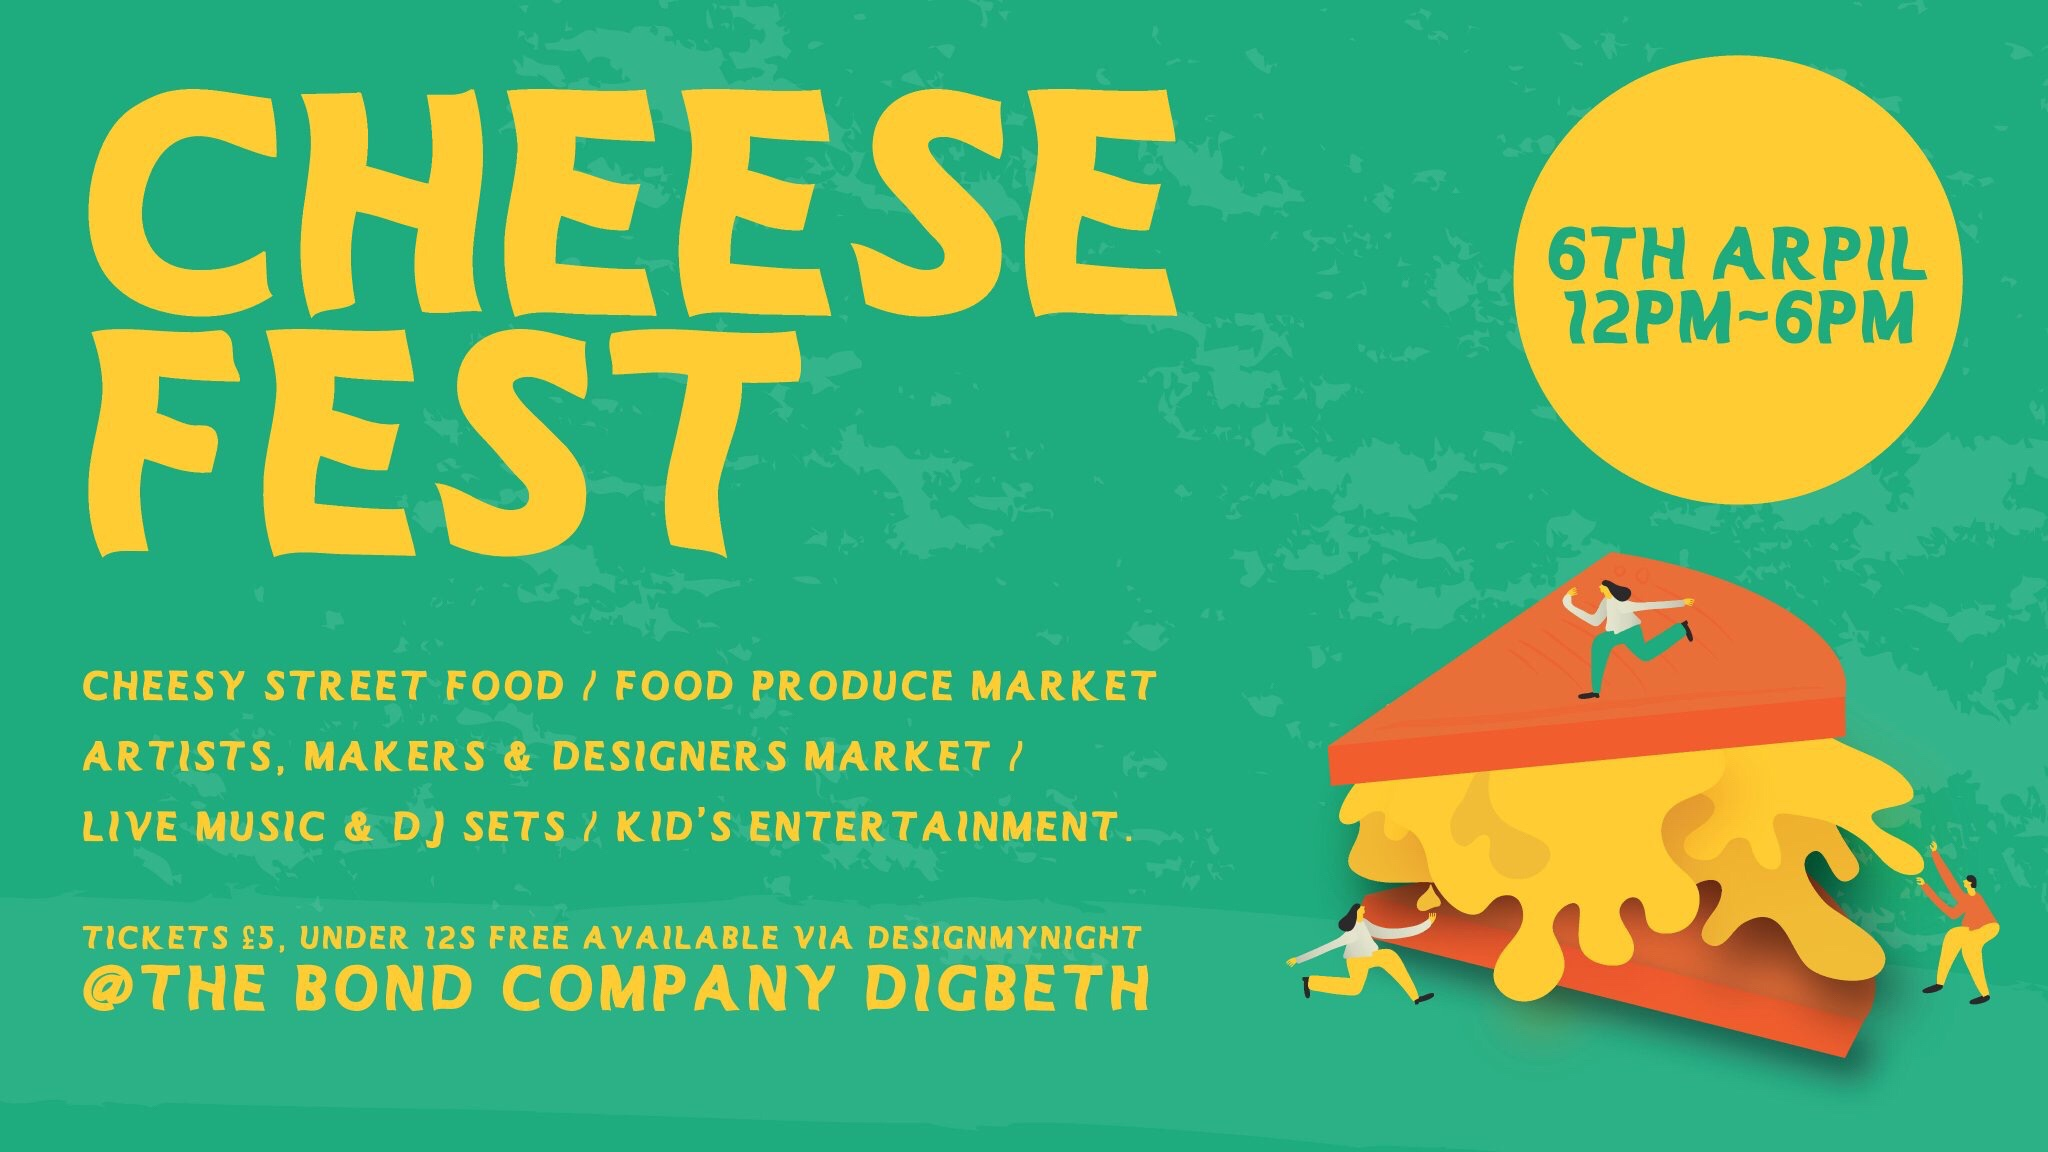 Cheese fest Digbeth